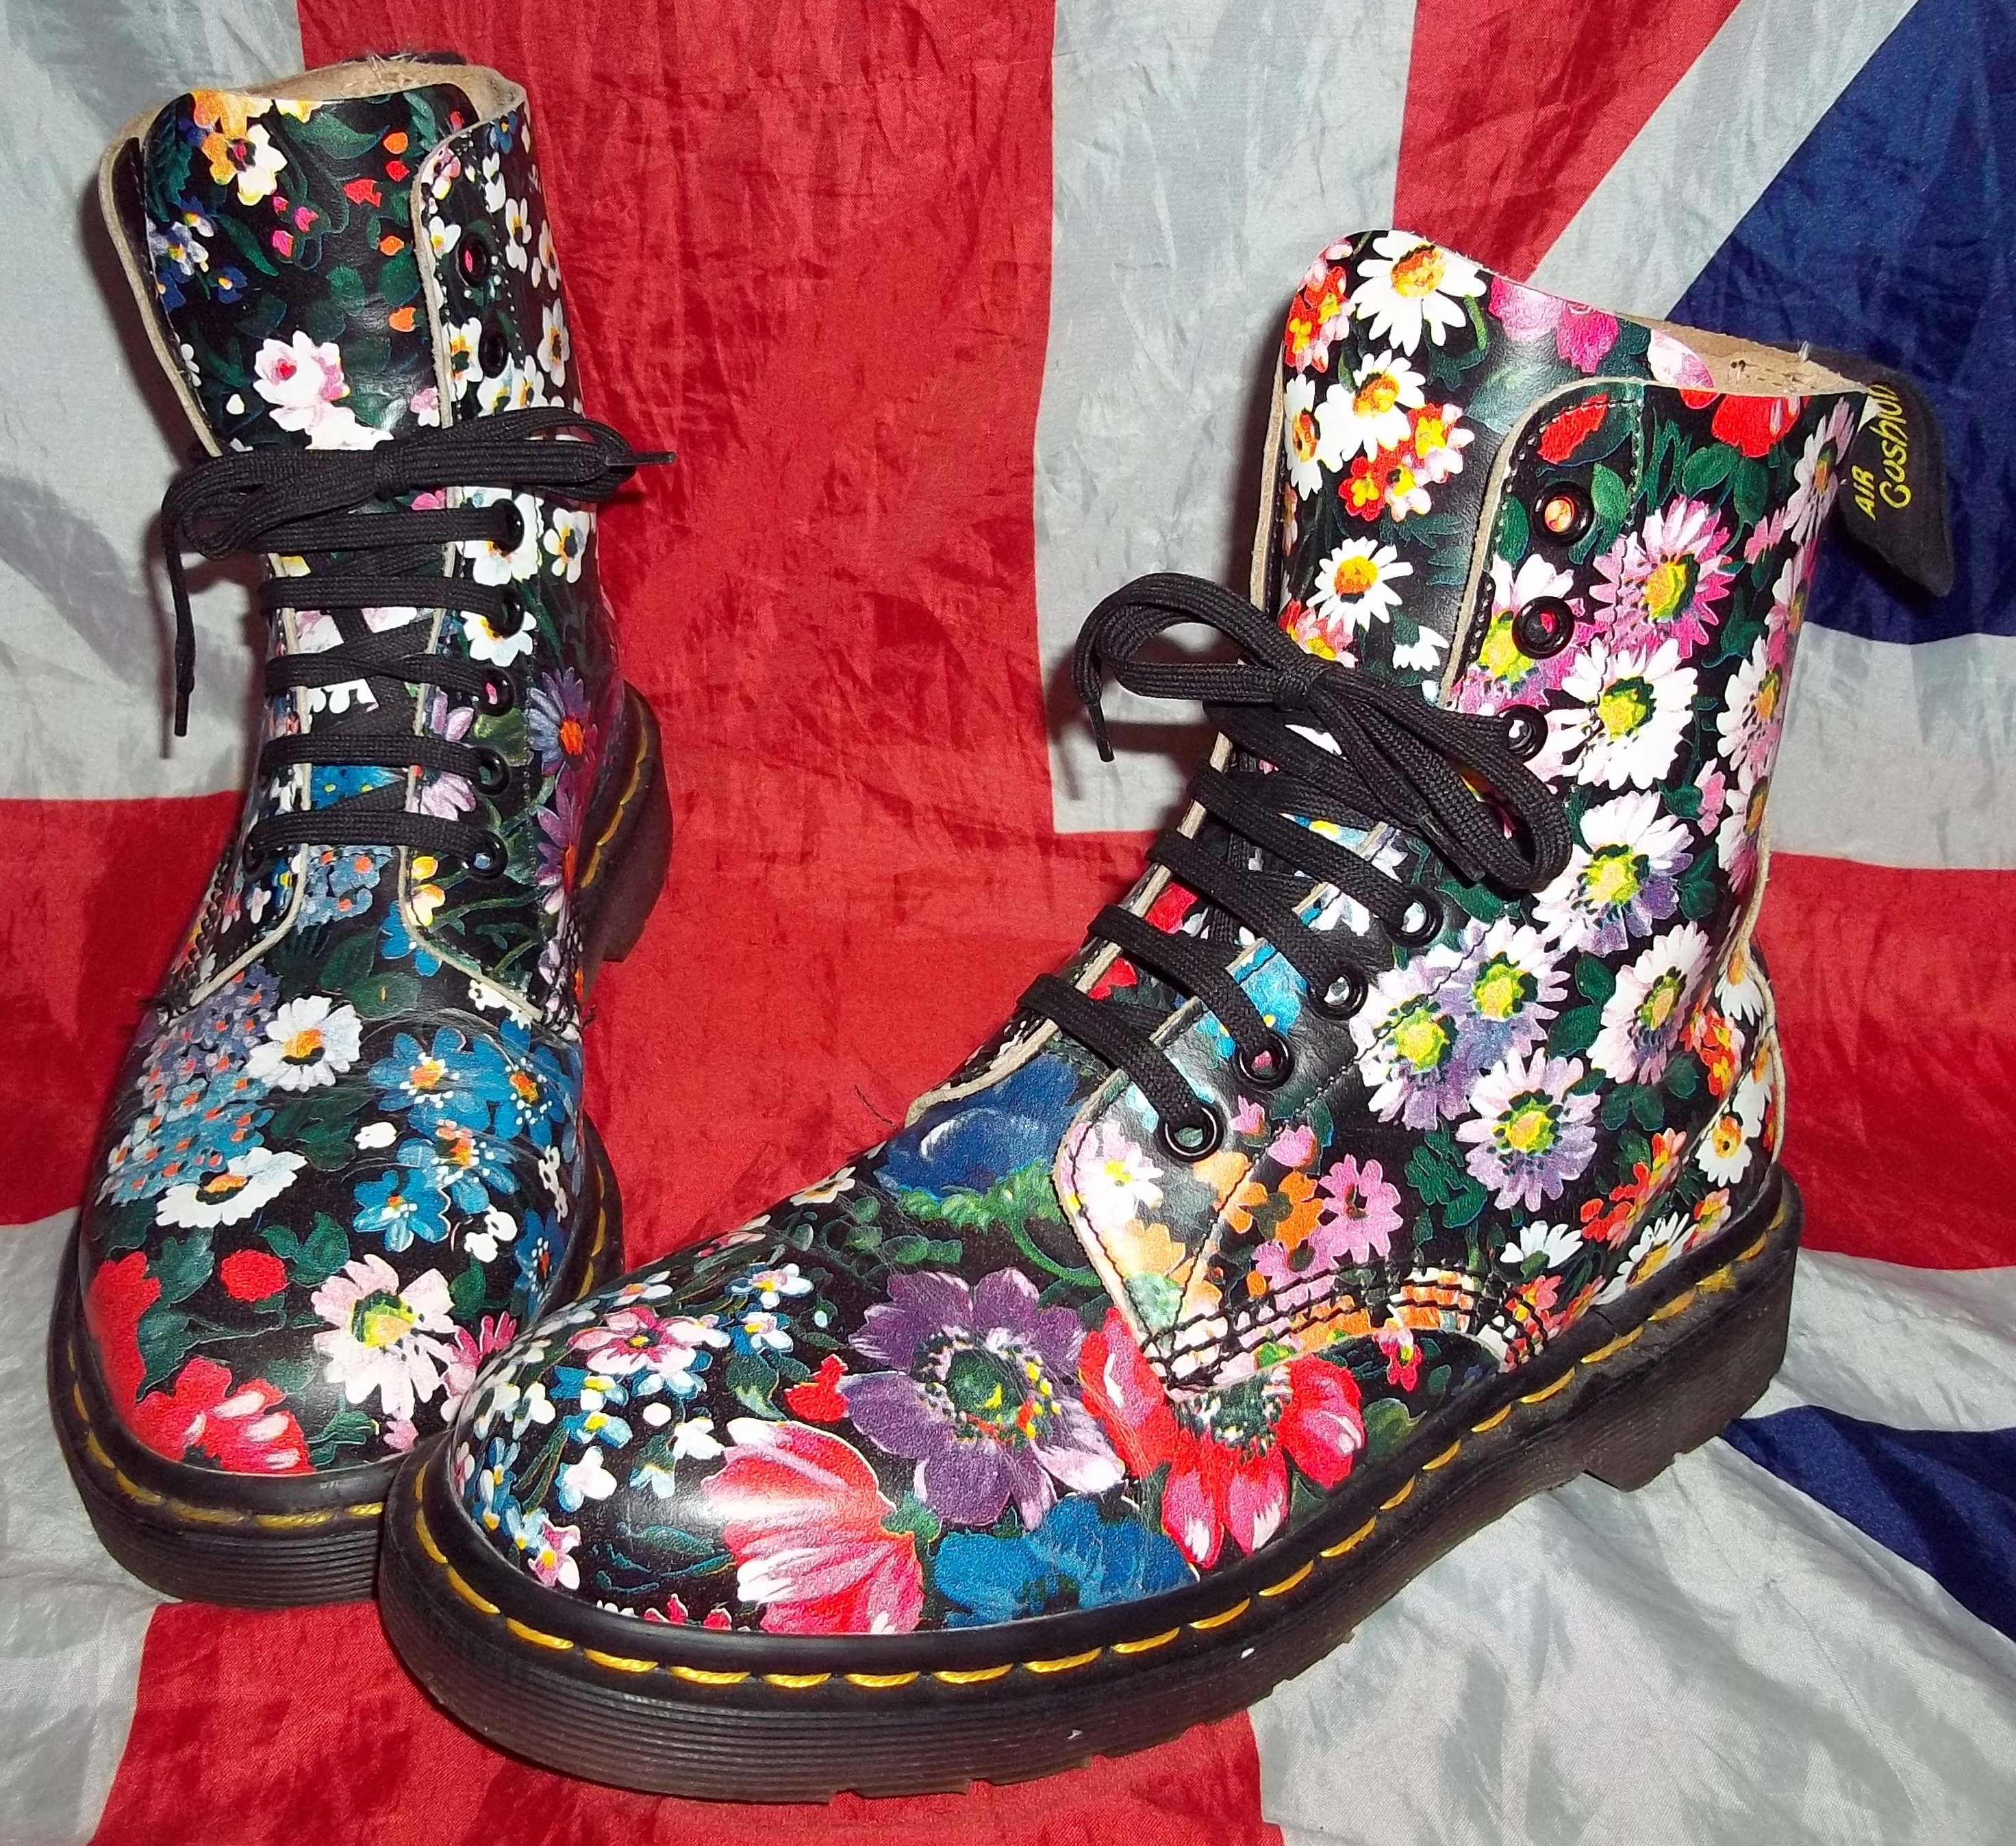 Mint and rare vintage 90s floral dr doc martens hippy meadow mint and rare vintage 90s floral dr doc martens hippy meadow flowers uk 5eu 38us 7 on storenvy mightylinksfo